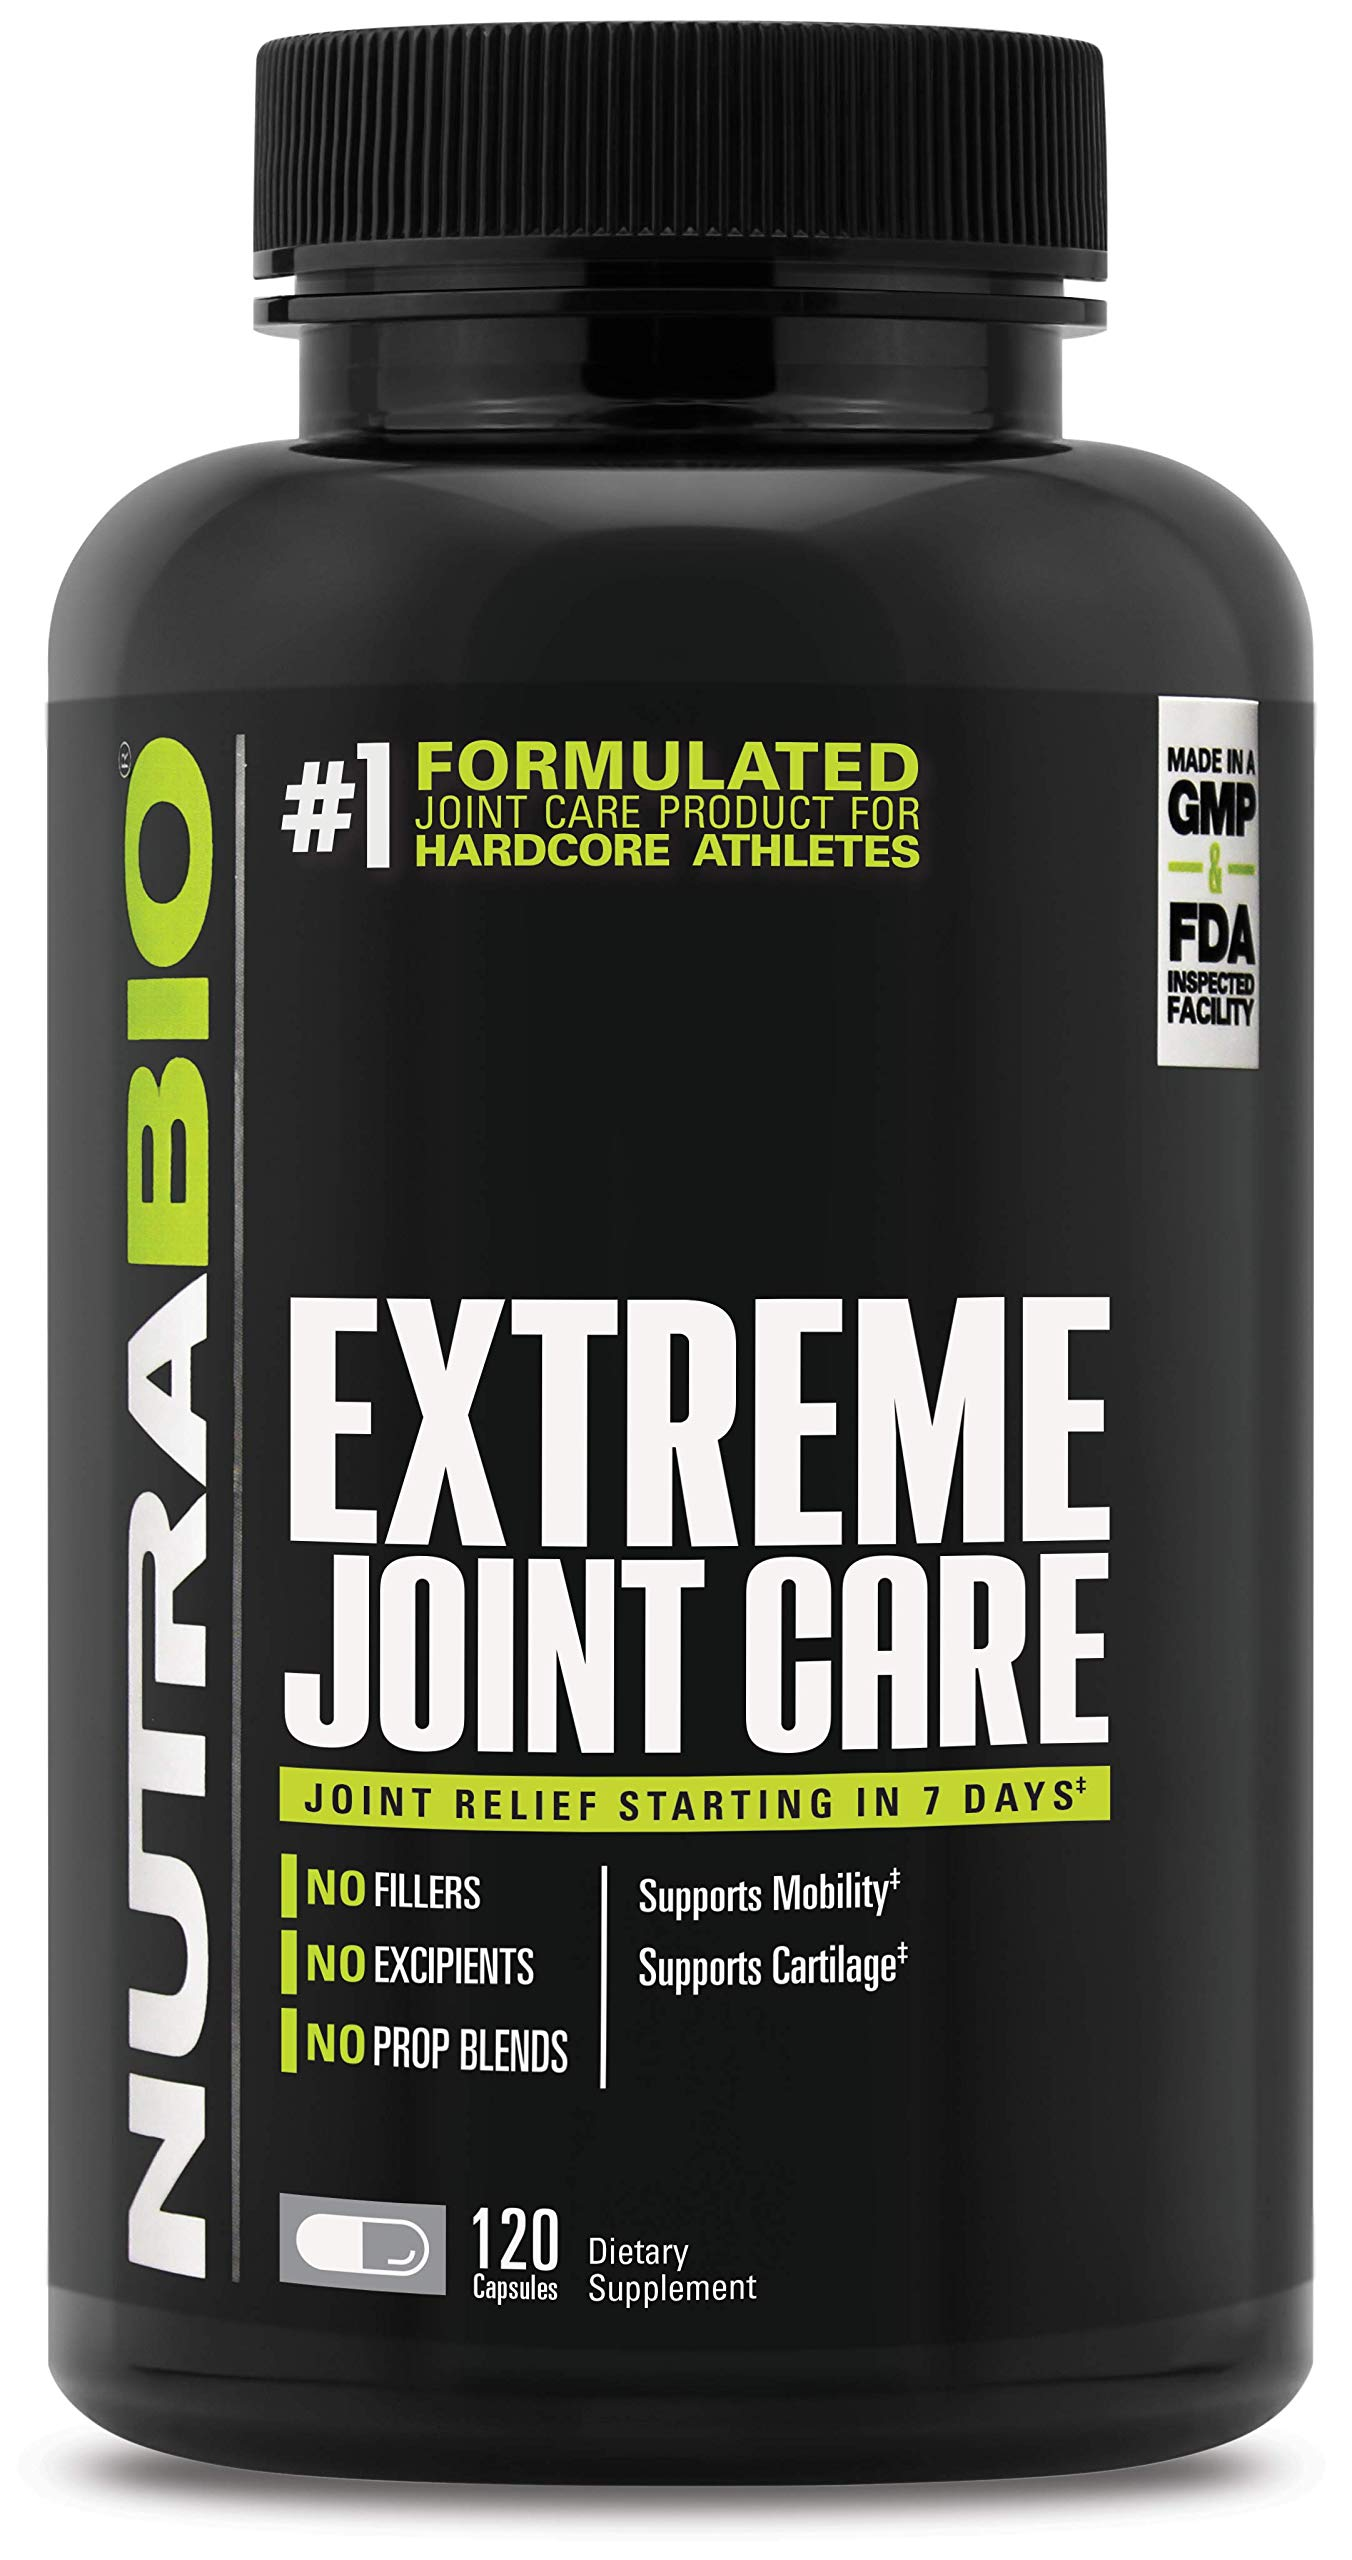 NutraBio Extreme Joint Care - Supports Healthy Joints, Mobility, and Cartilage - No Fillers, Excipients, or Proprietary Blends - Full Joint and Musculoskeletal Support Matrix - 120 Capsules